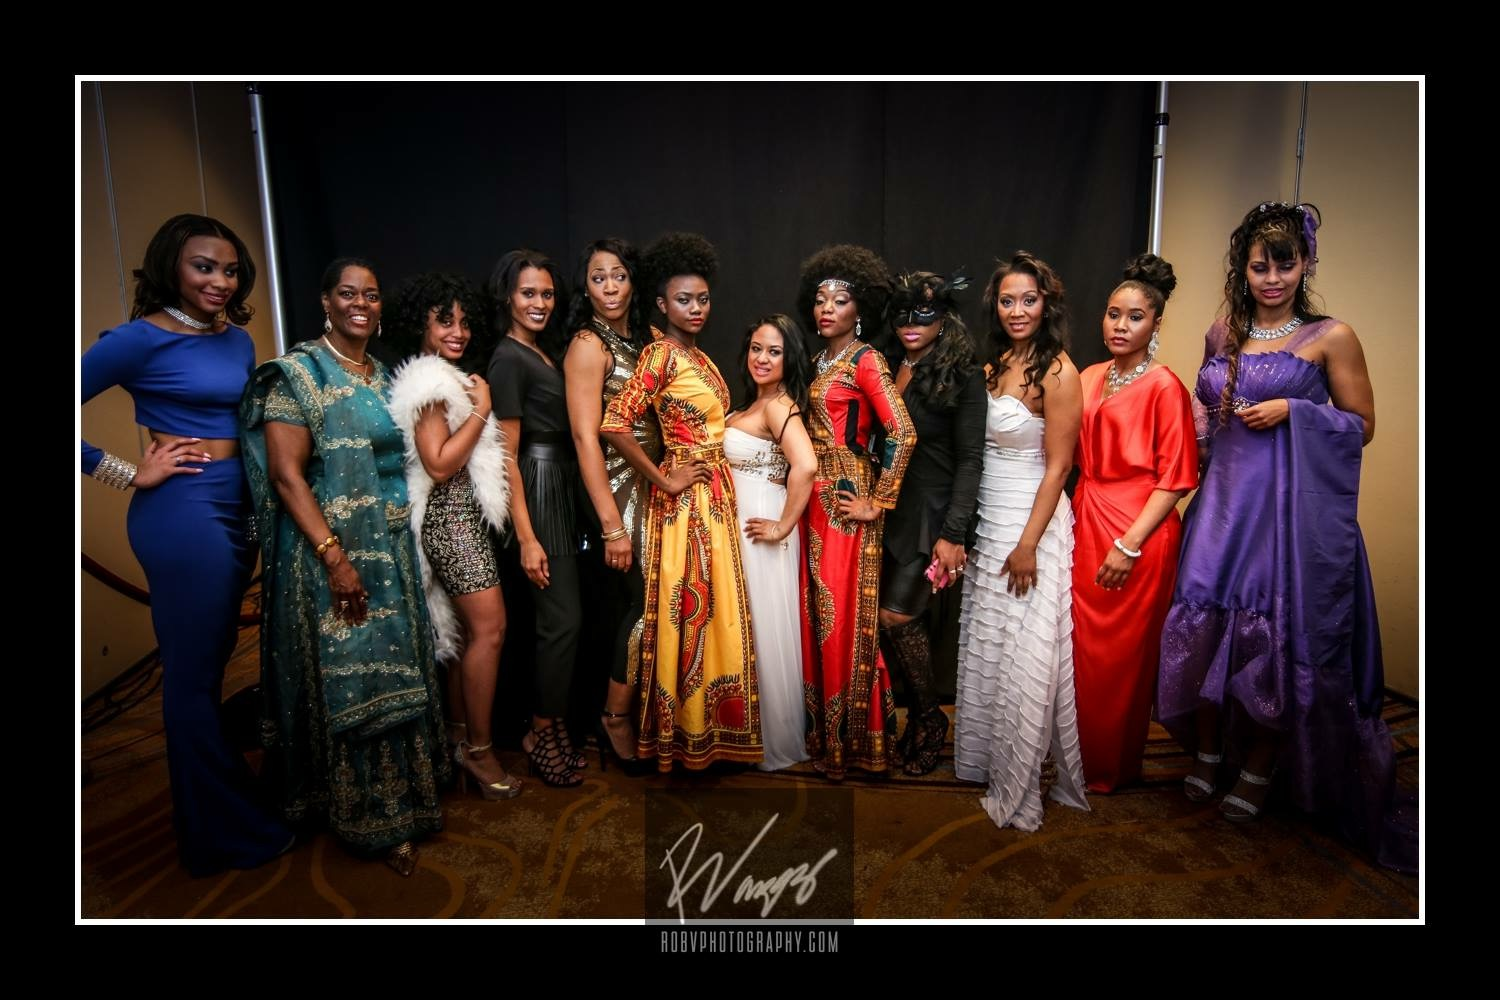 2016 Model of Year Contestants